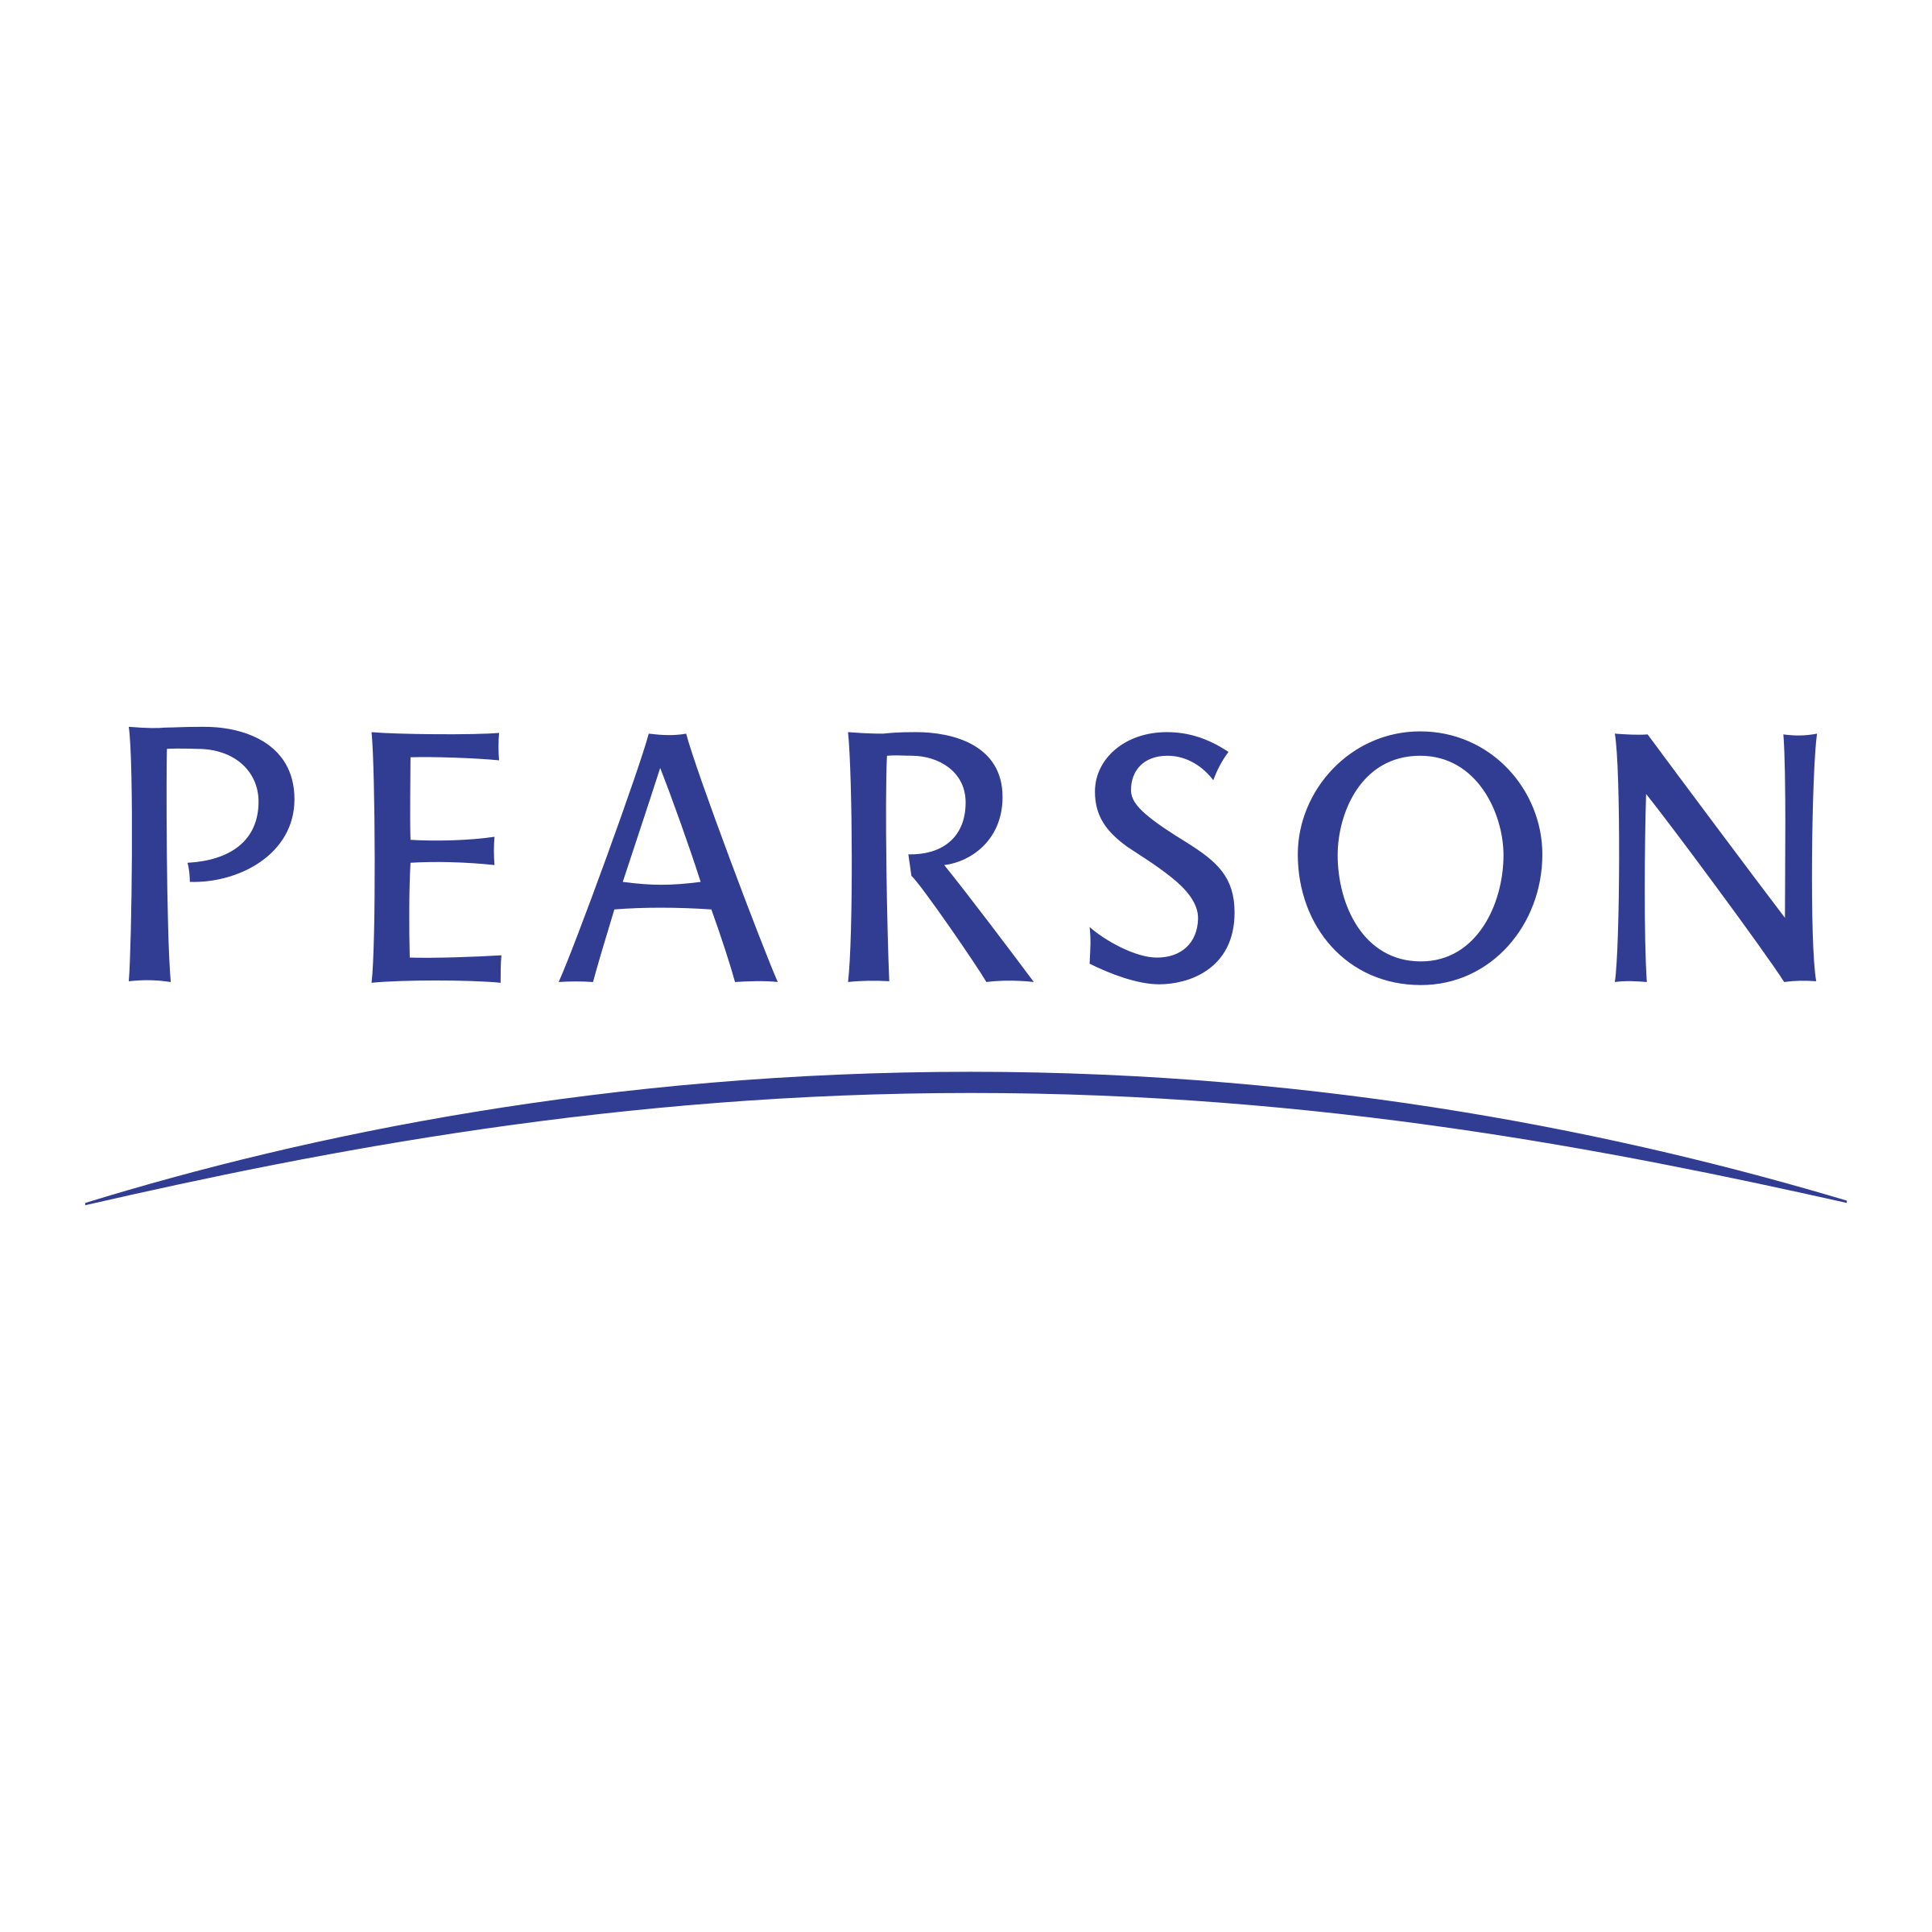 pearson-logo-png-transparent